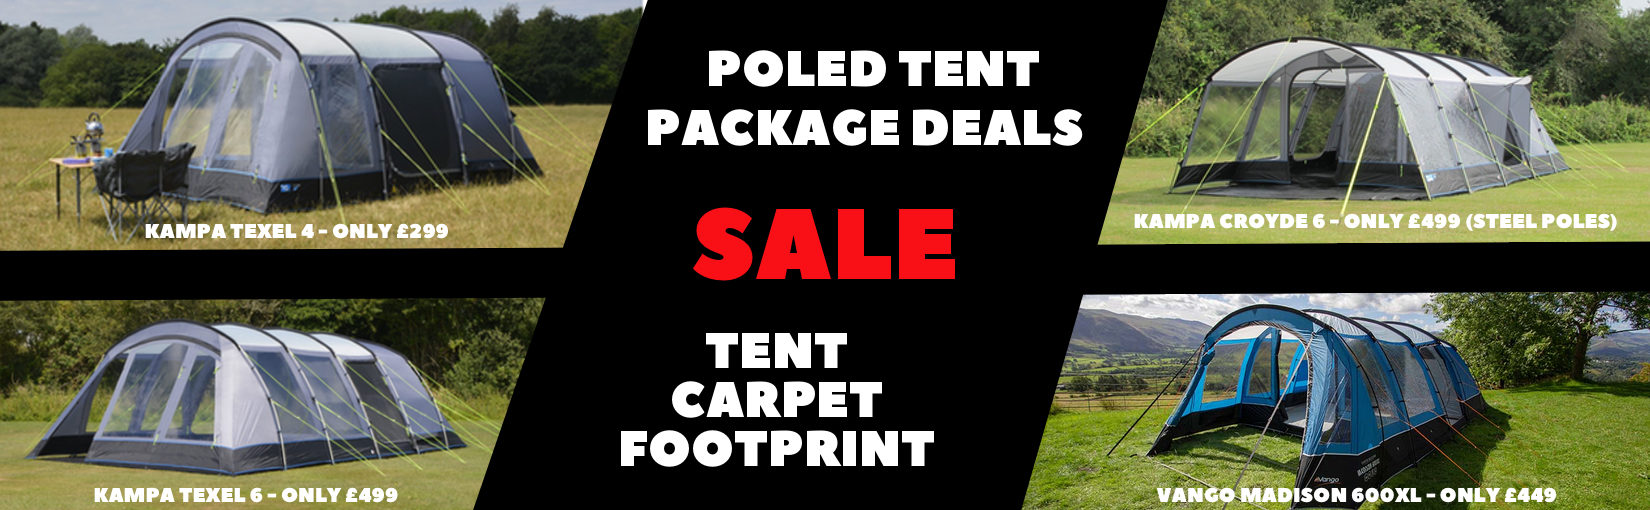 1650X510 Poled Tent Package Deals